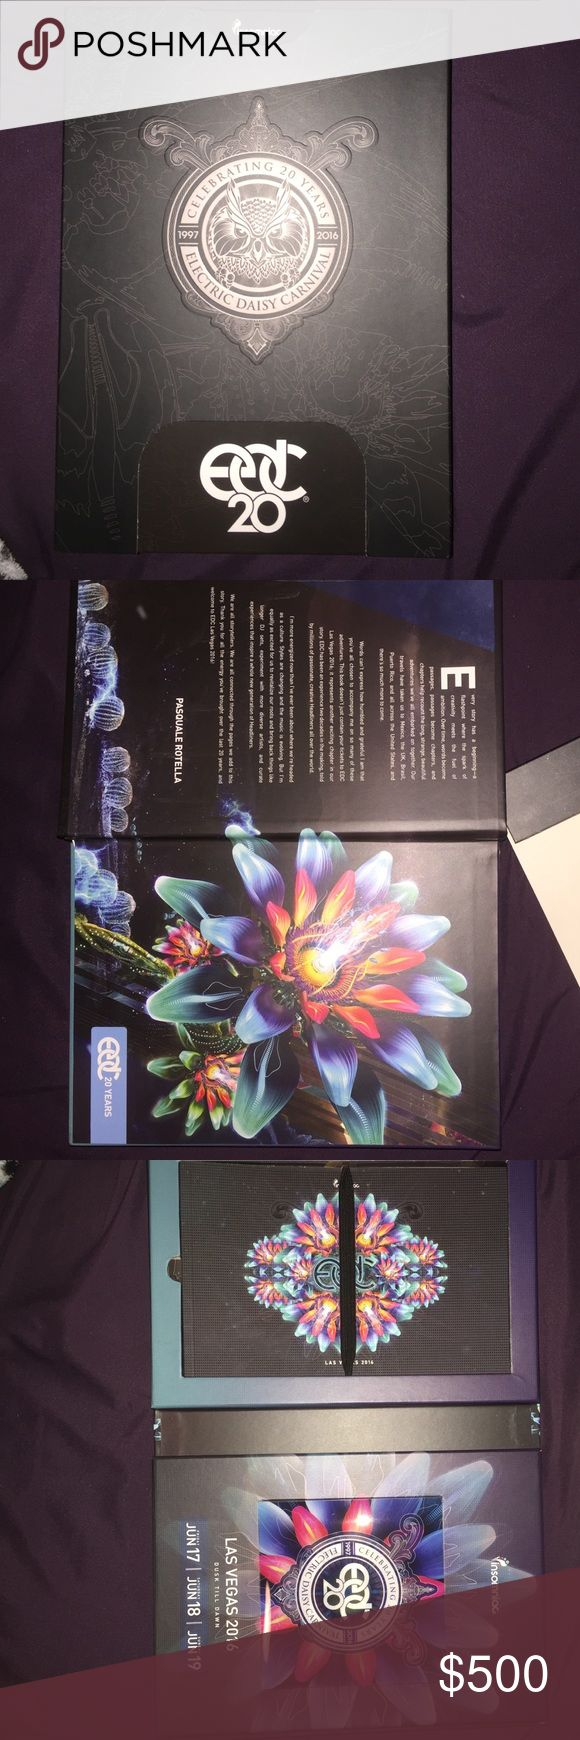 EDC ticket must go I have one 3 day pass EDC ticket must get ride off asap this year EDC is in Vegas I will express mail it Other